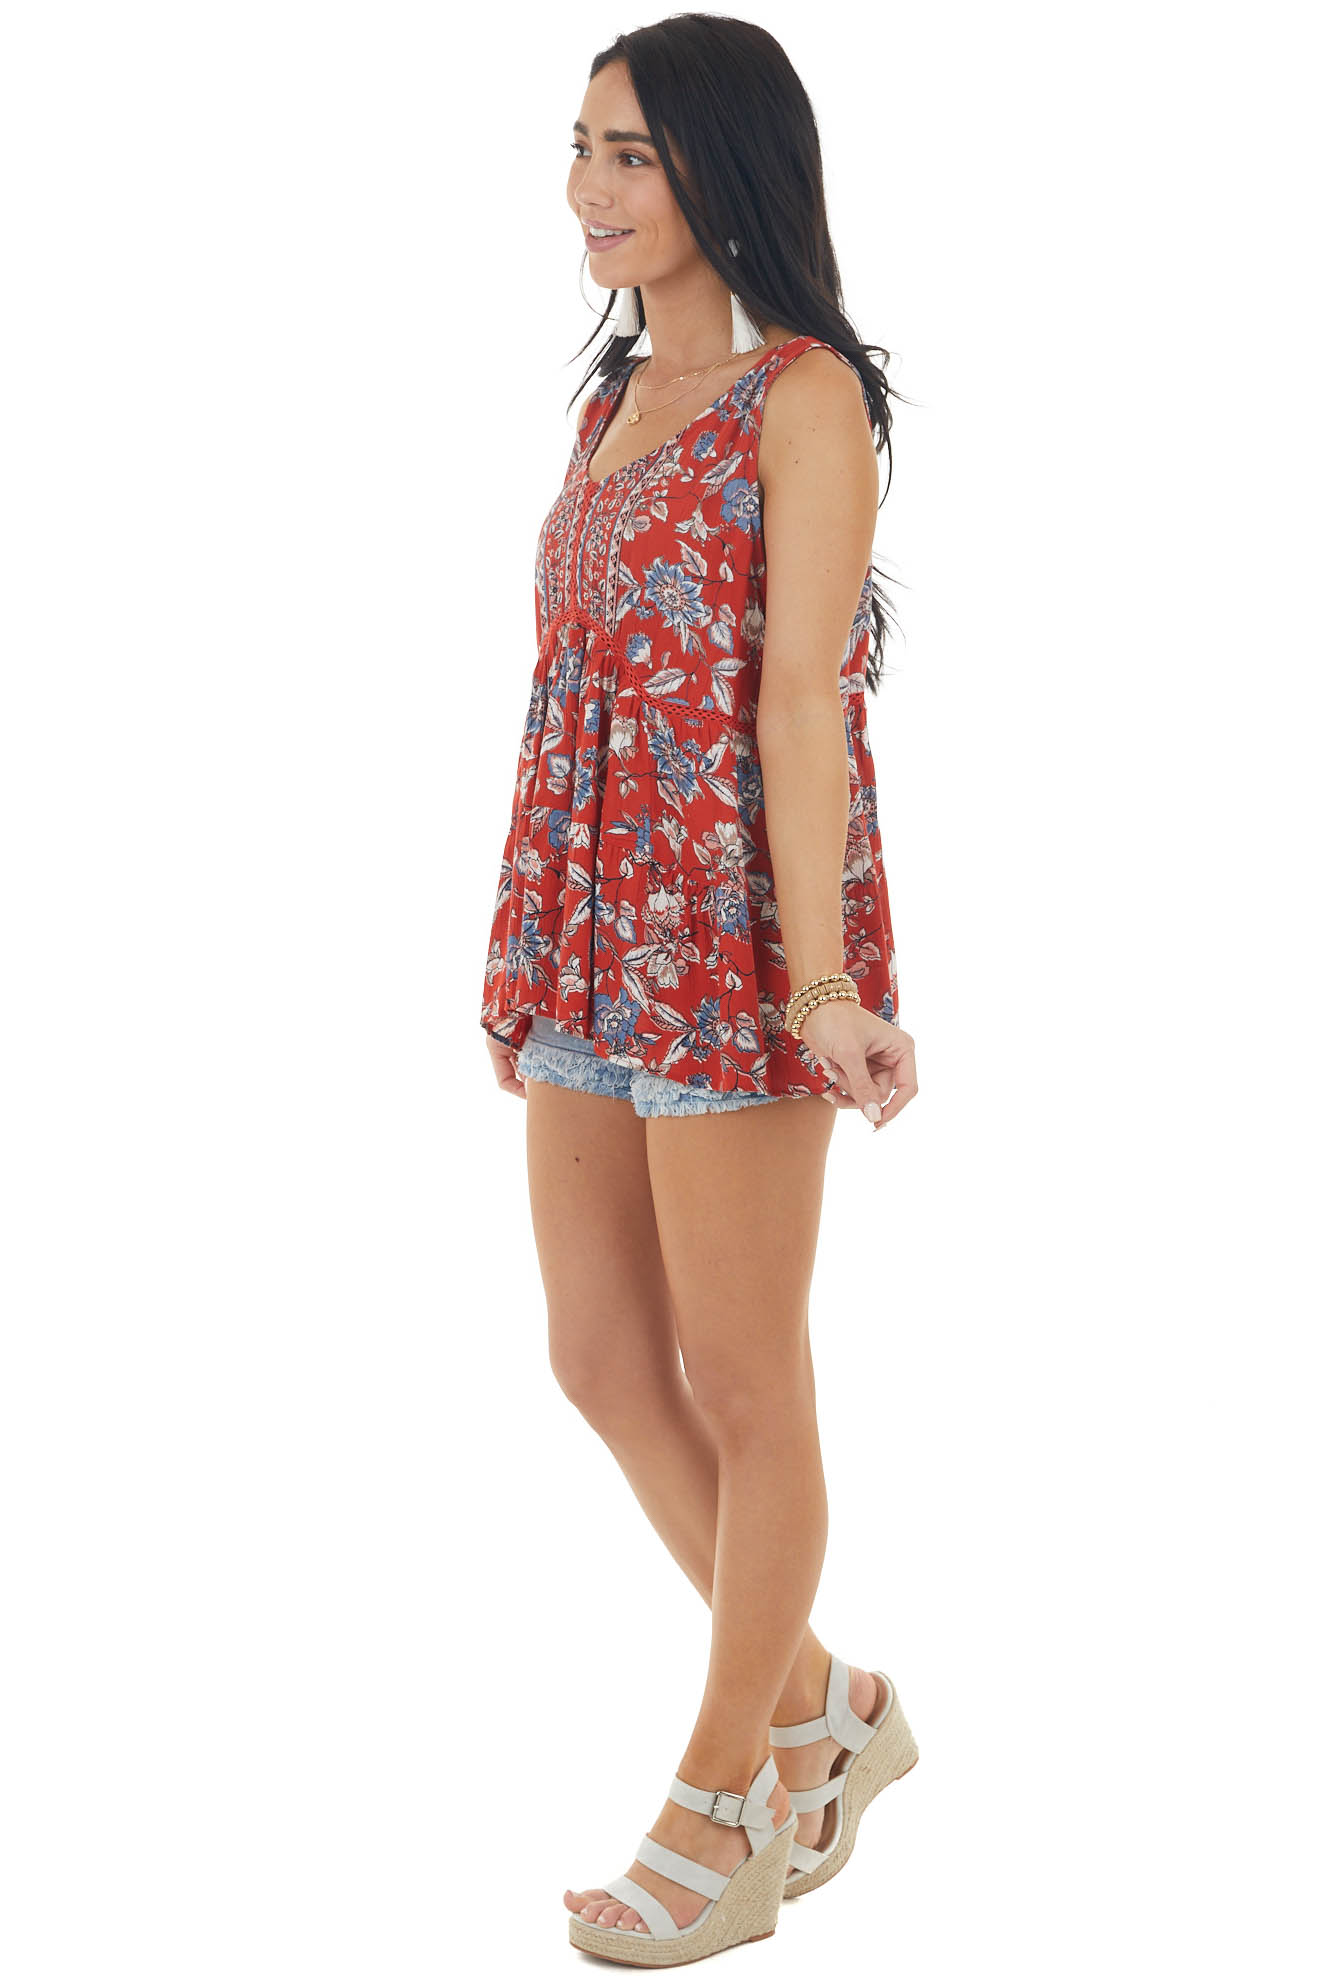 Lipstick Floral Print Sleeveless Top with Eyelet Lace Detail